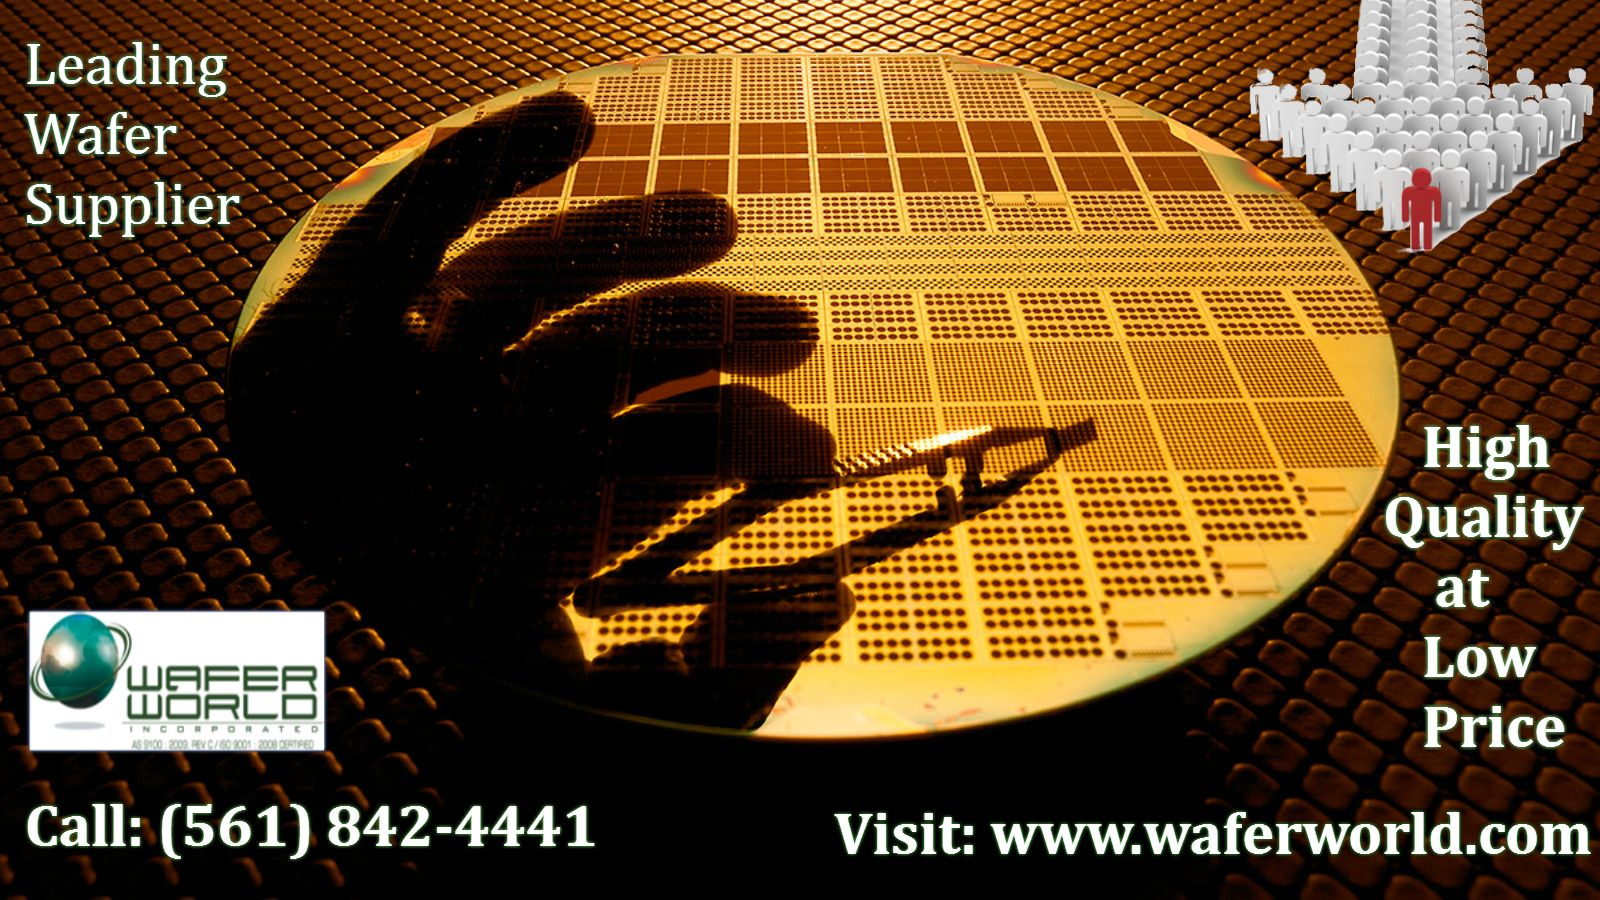 Silicon Wafer Suppliers in West Palm Beach, Florida If